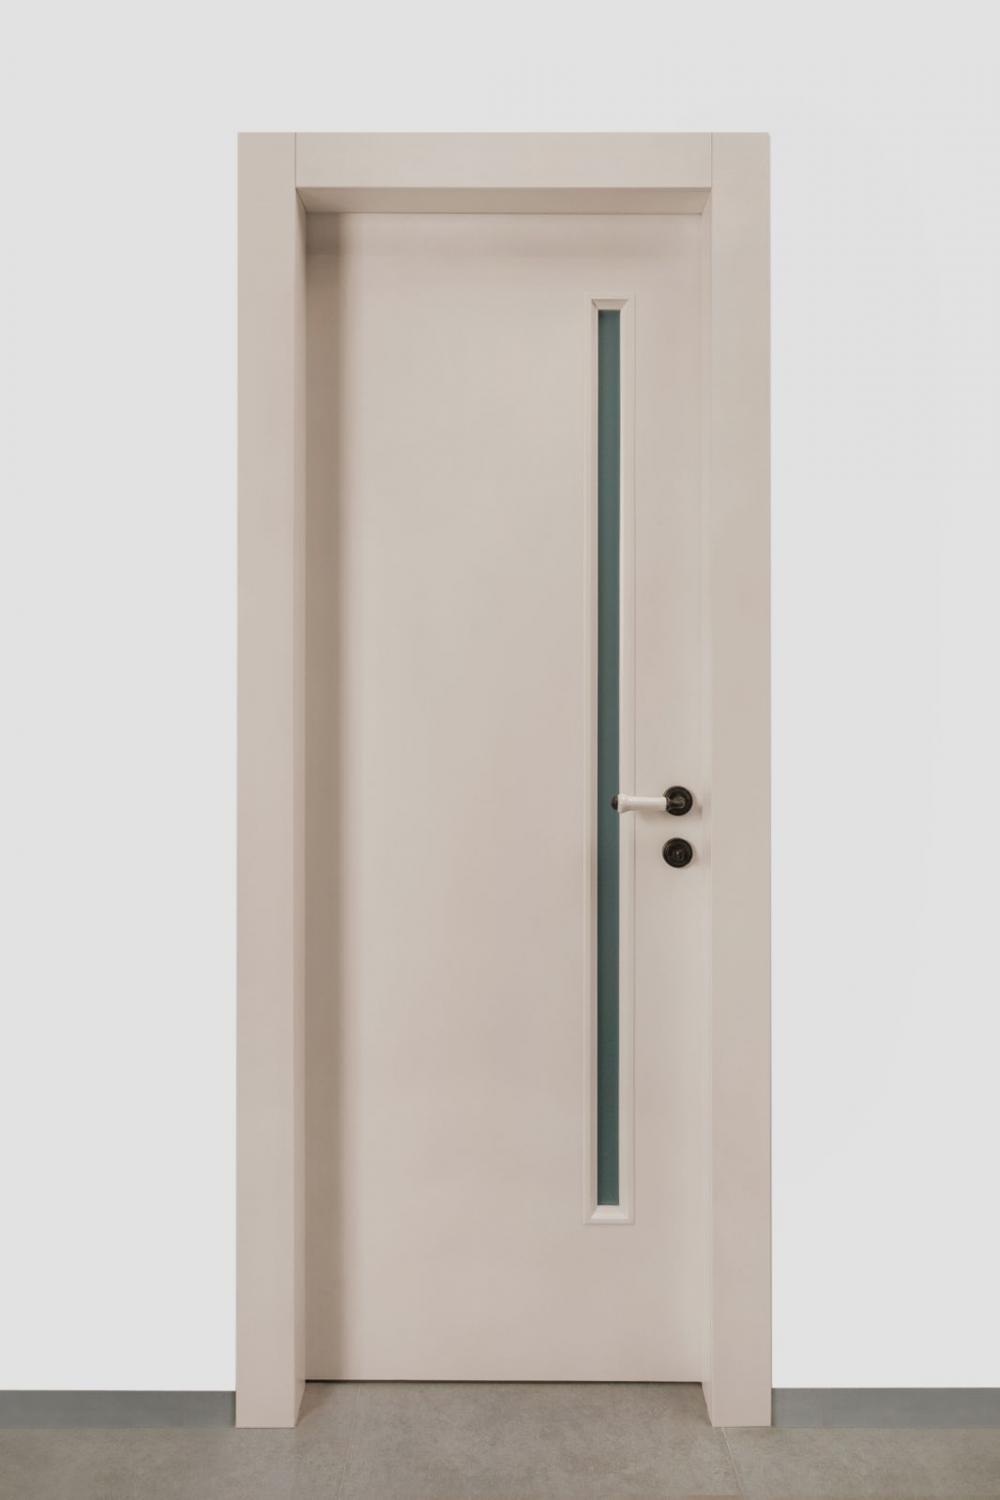 High Quality Exterior Doors Jefferson Door: DOOR WAREHOUSE- High Quality Interior Doors At Great Prices